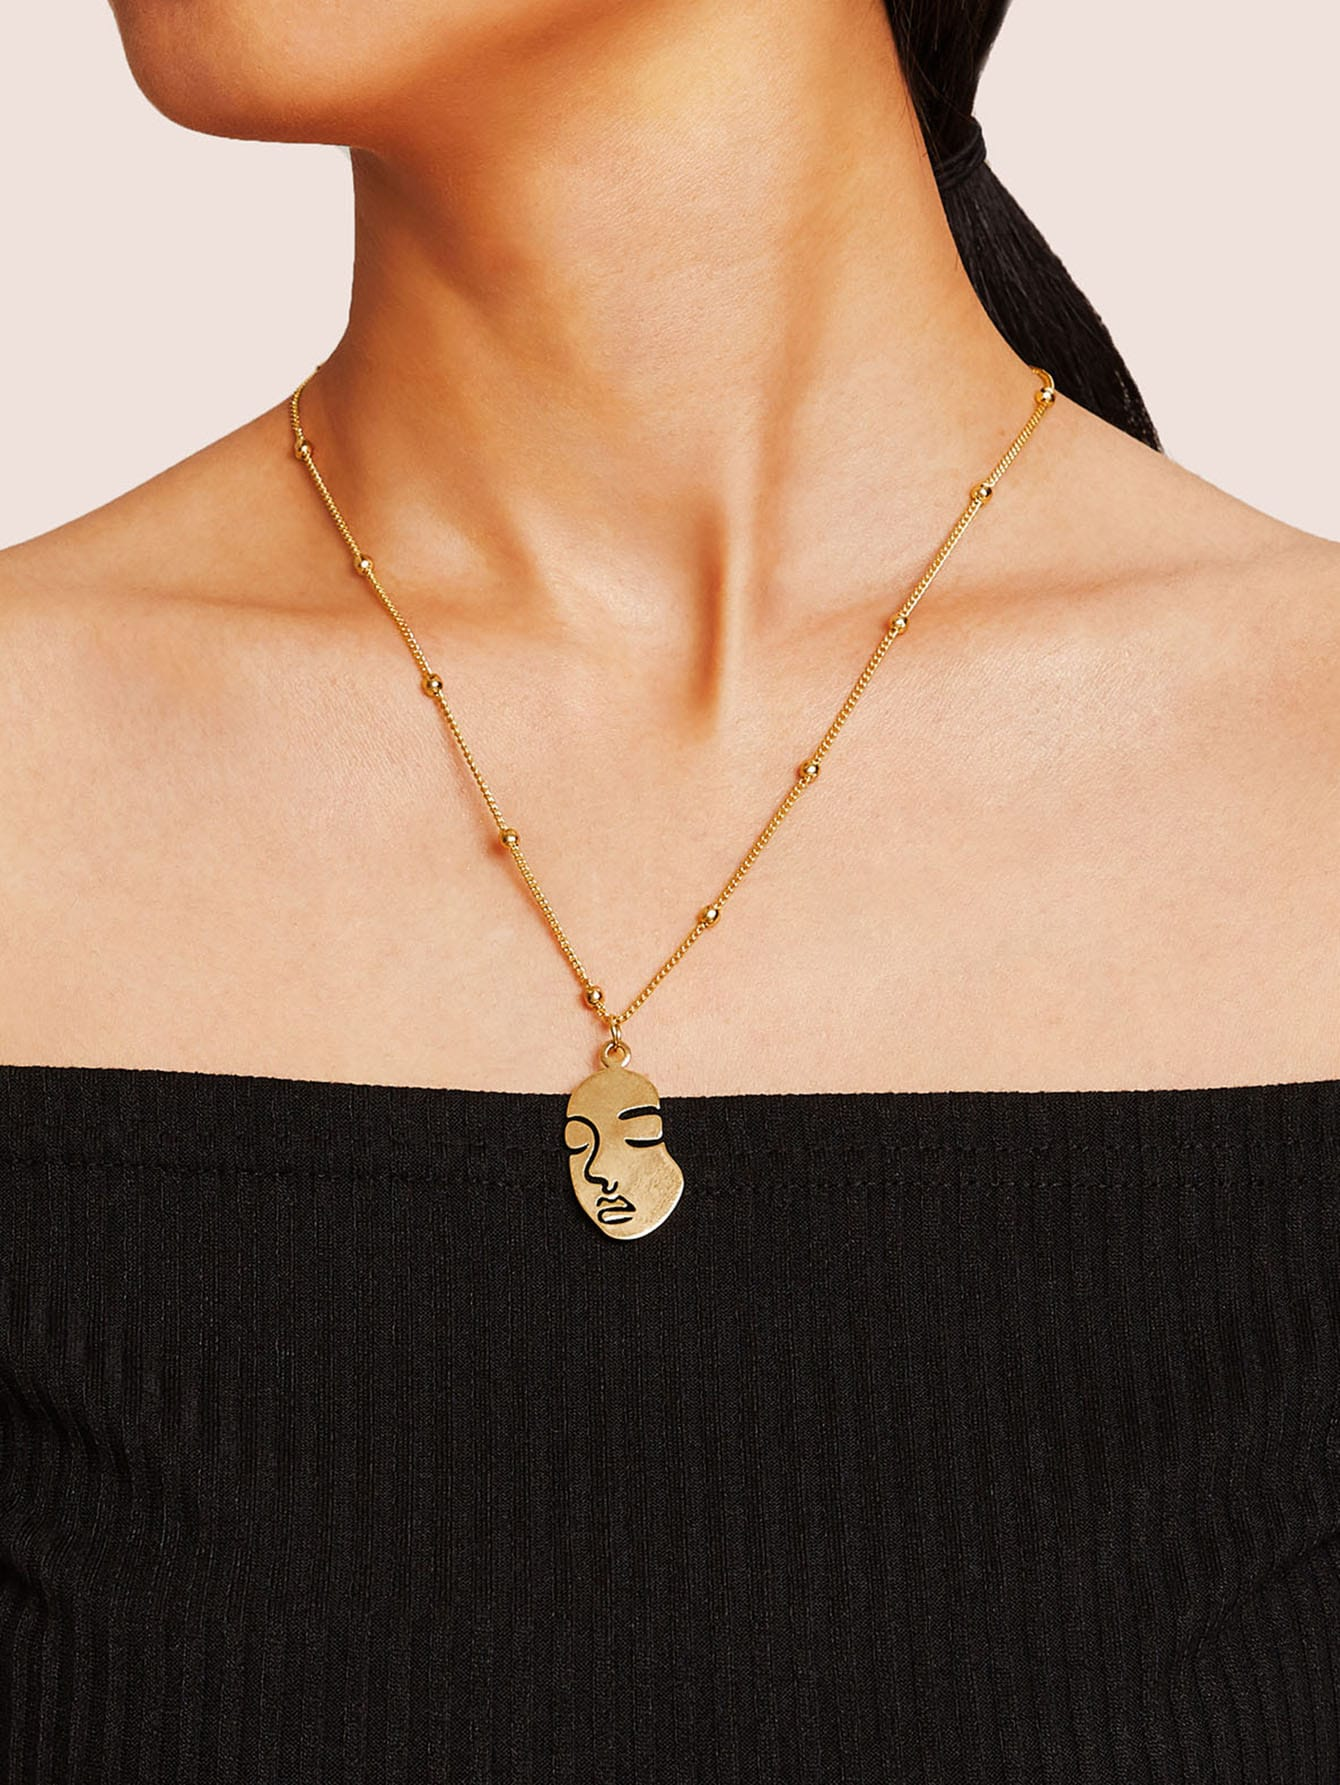 Golden Face Pendant With Ball Chain 1pc Necklace